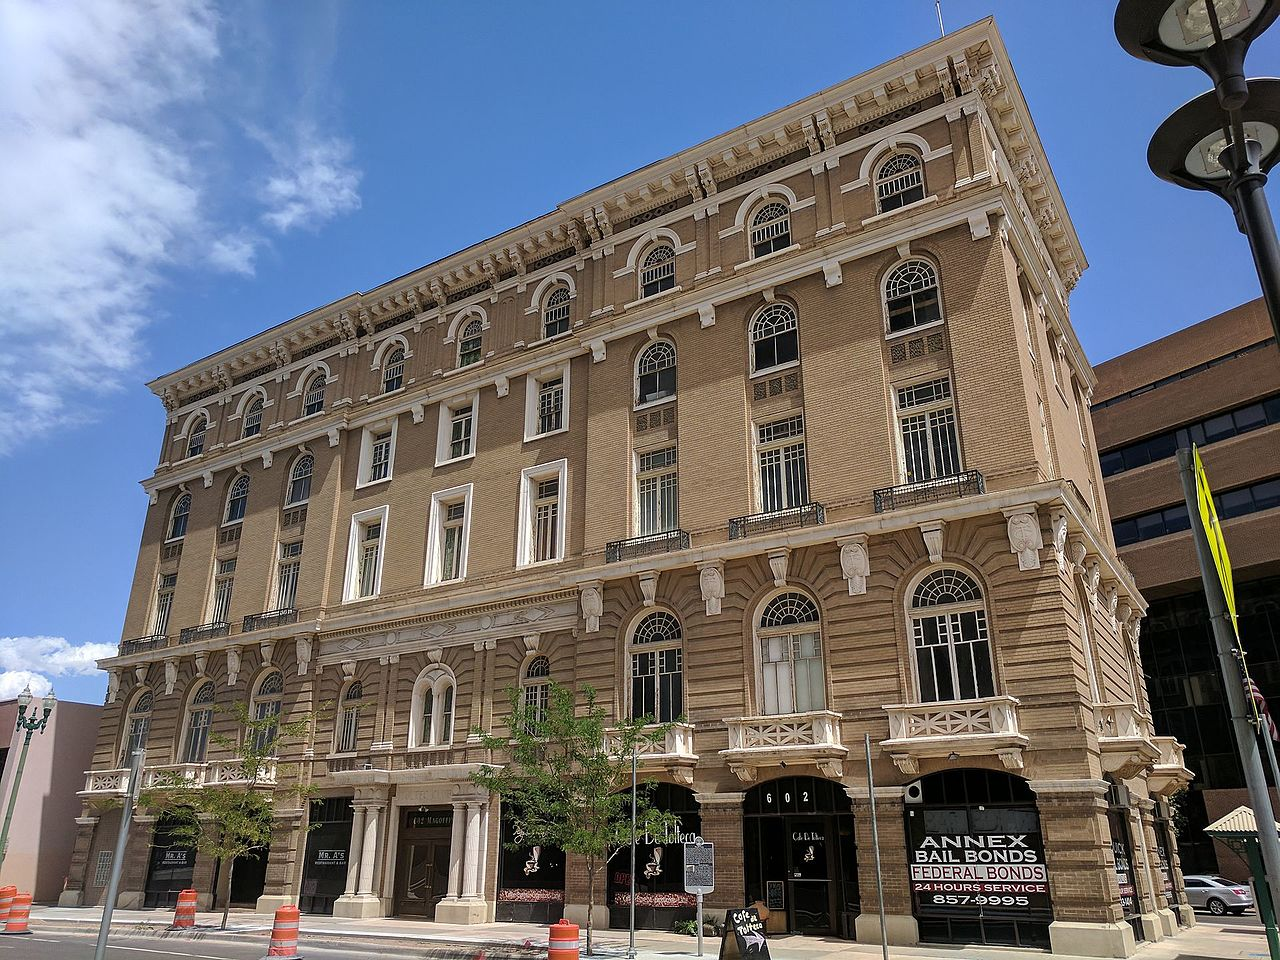 The Toltec Building, also known as the Toltec Club, was built in 1908 and is one of the most architecturally striking buildings in El Paso.